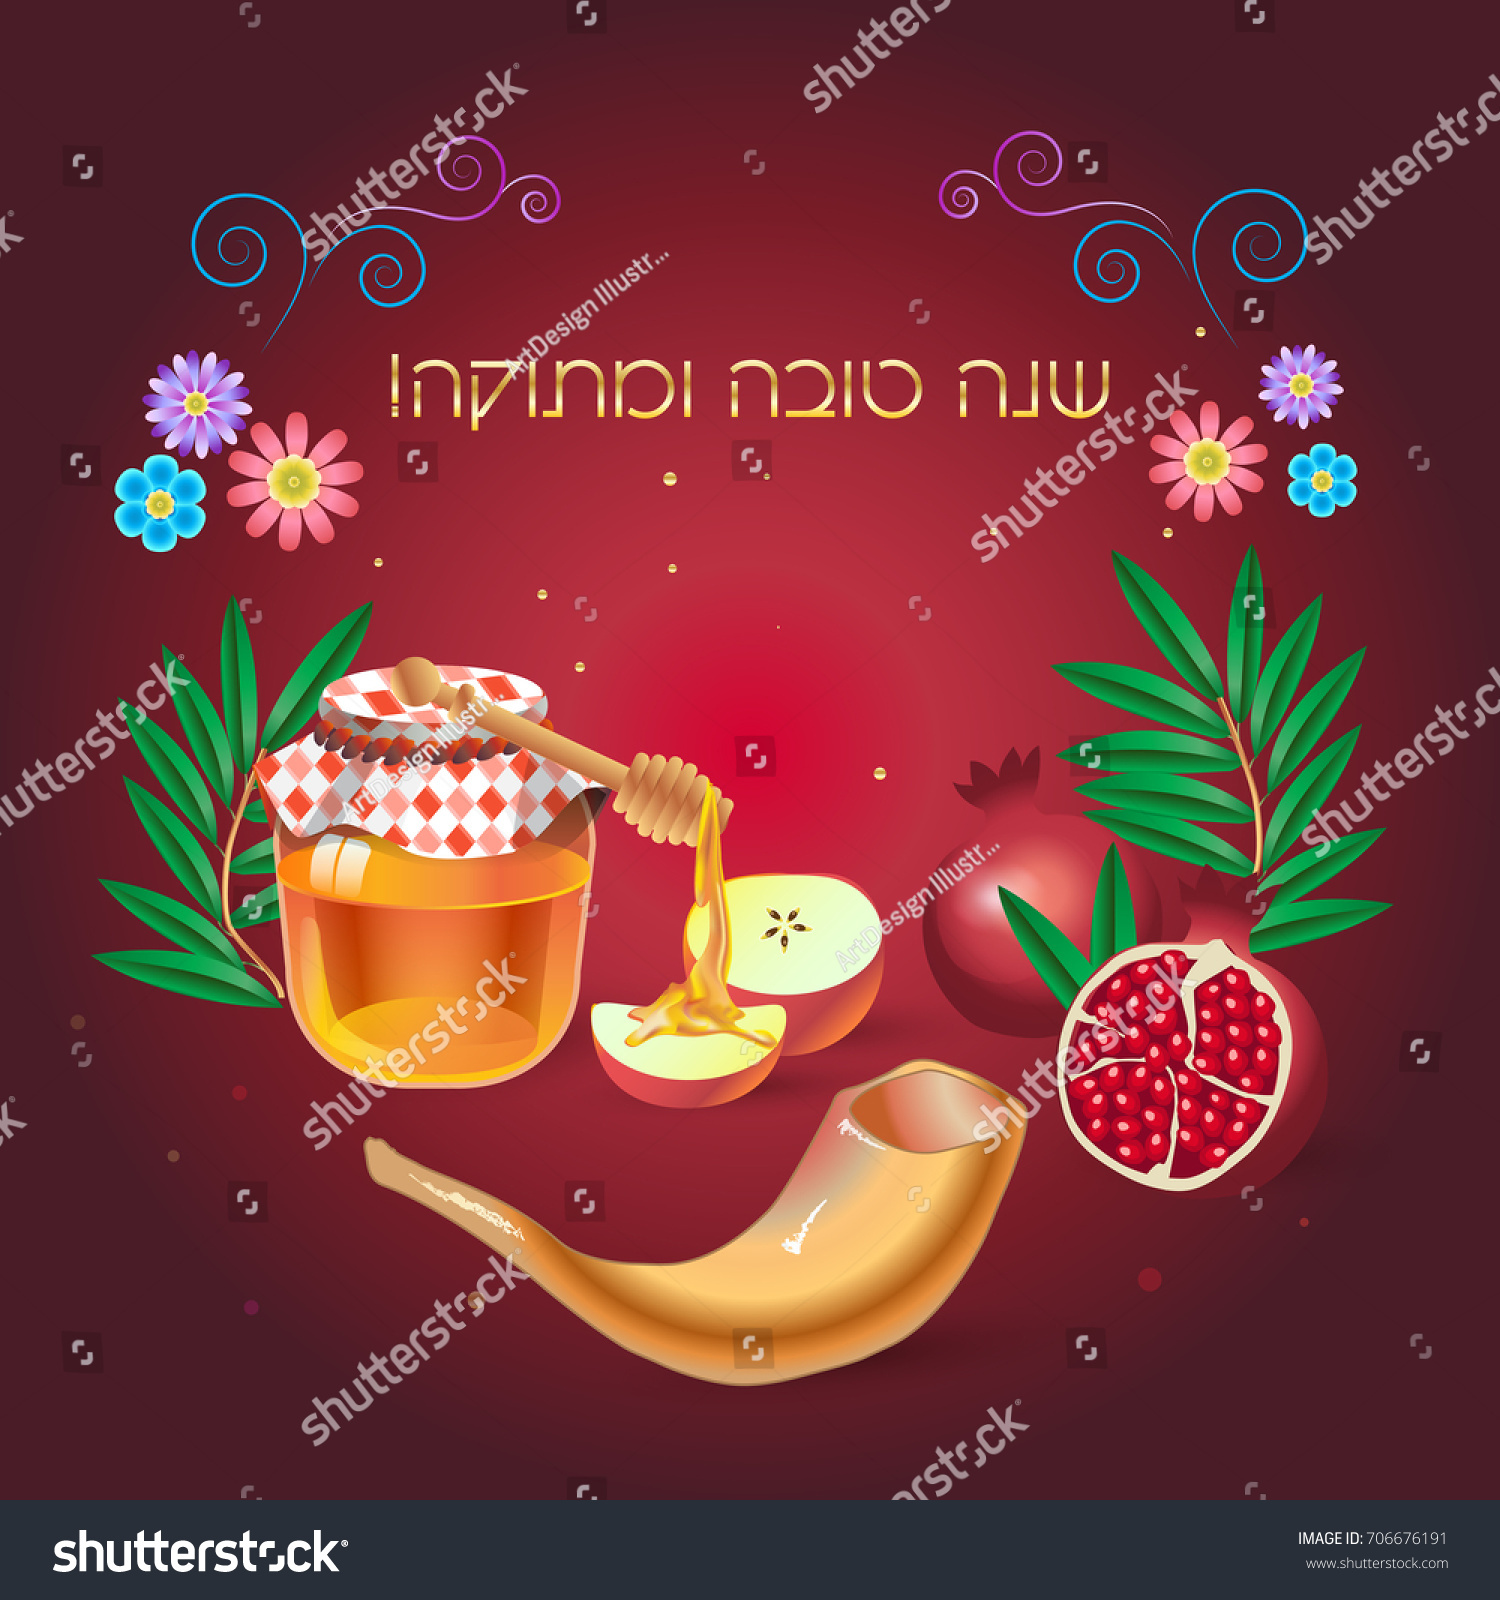 Happy new year rosh hashanah greeting stock vector 706676191 rosh hashanah greeting card jewish new year text shana kristyandbryce Choice Image